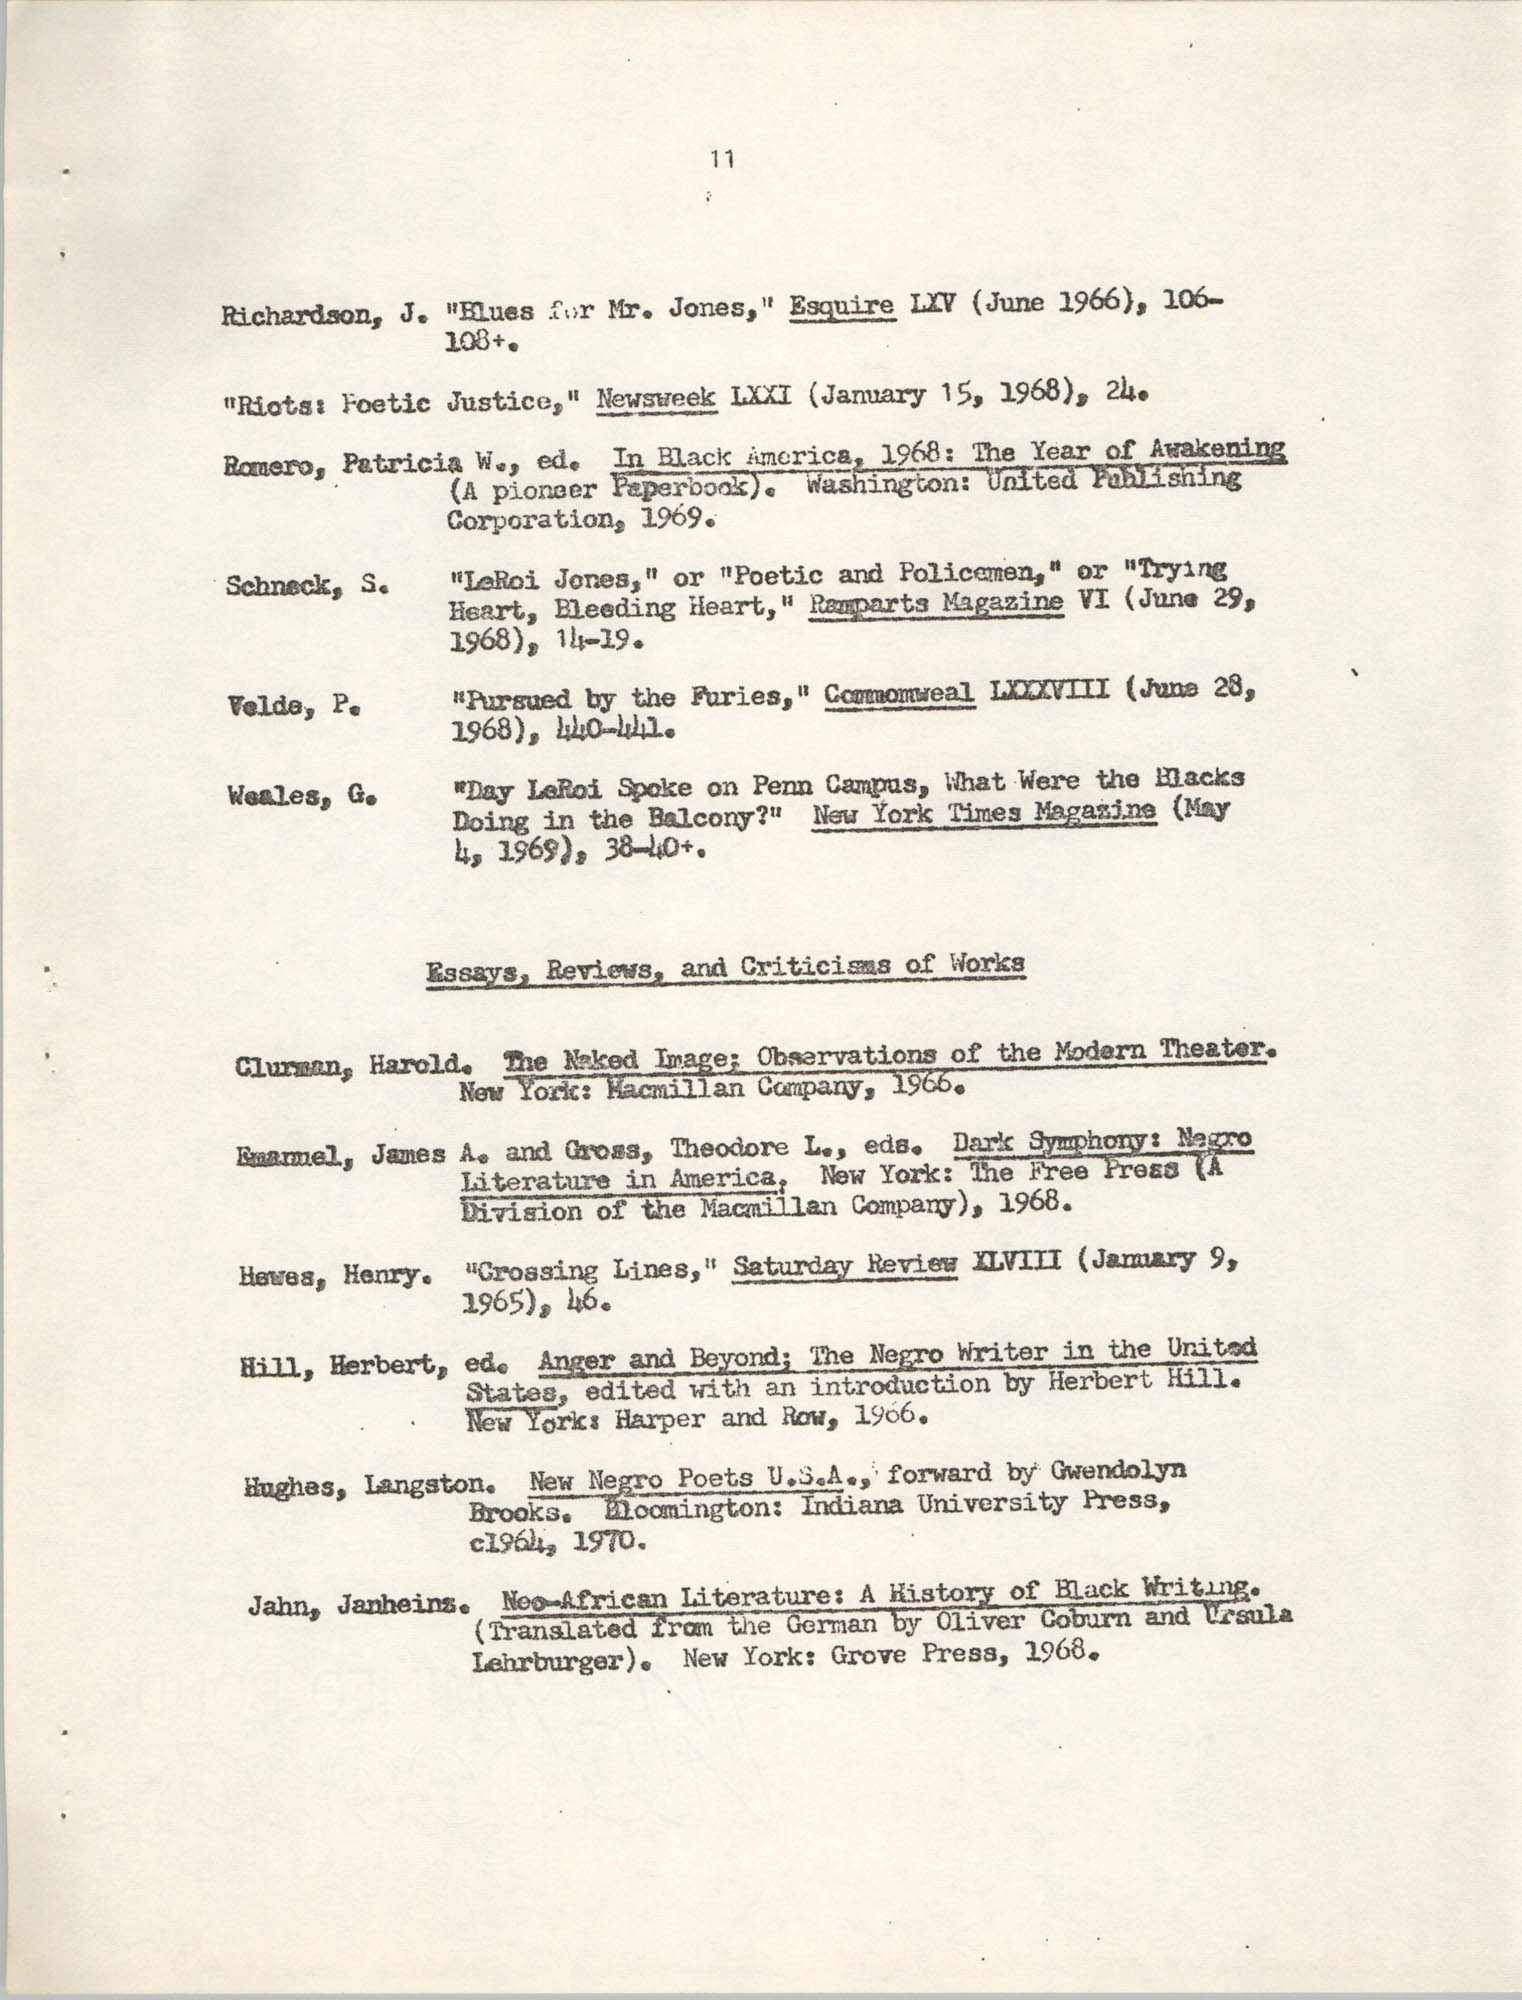 Center for African and African-American Studies Bibliography No. 2, Page 11